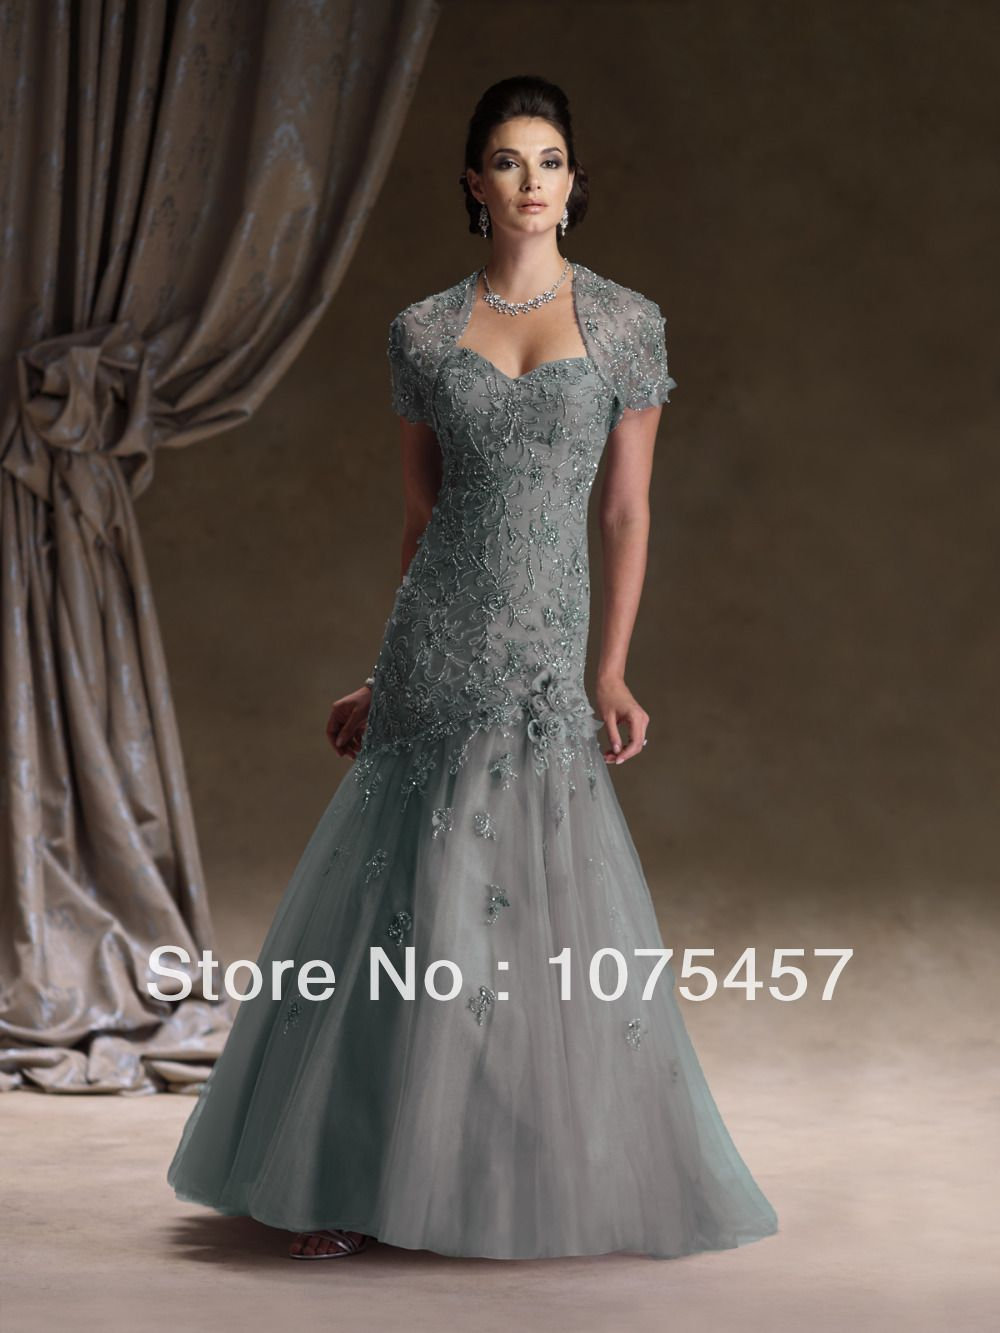 5e75cb094f779 Elegant Sweetheart Mother Bride Dress with Jacket Lace Bodice ...